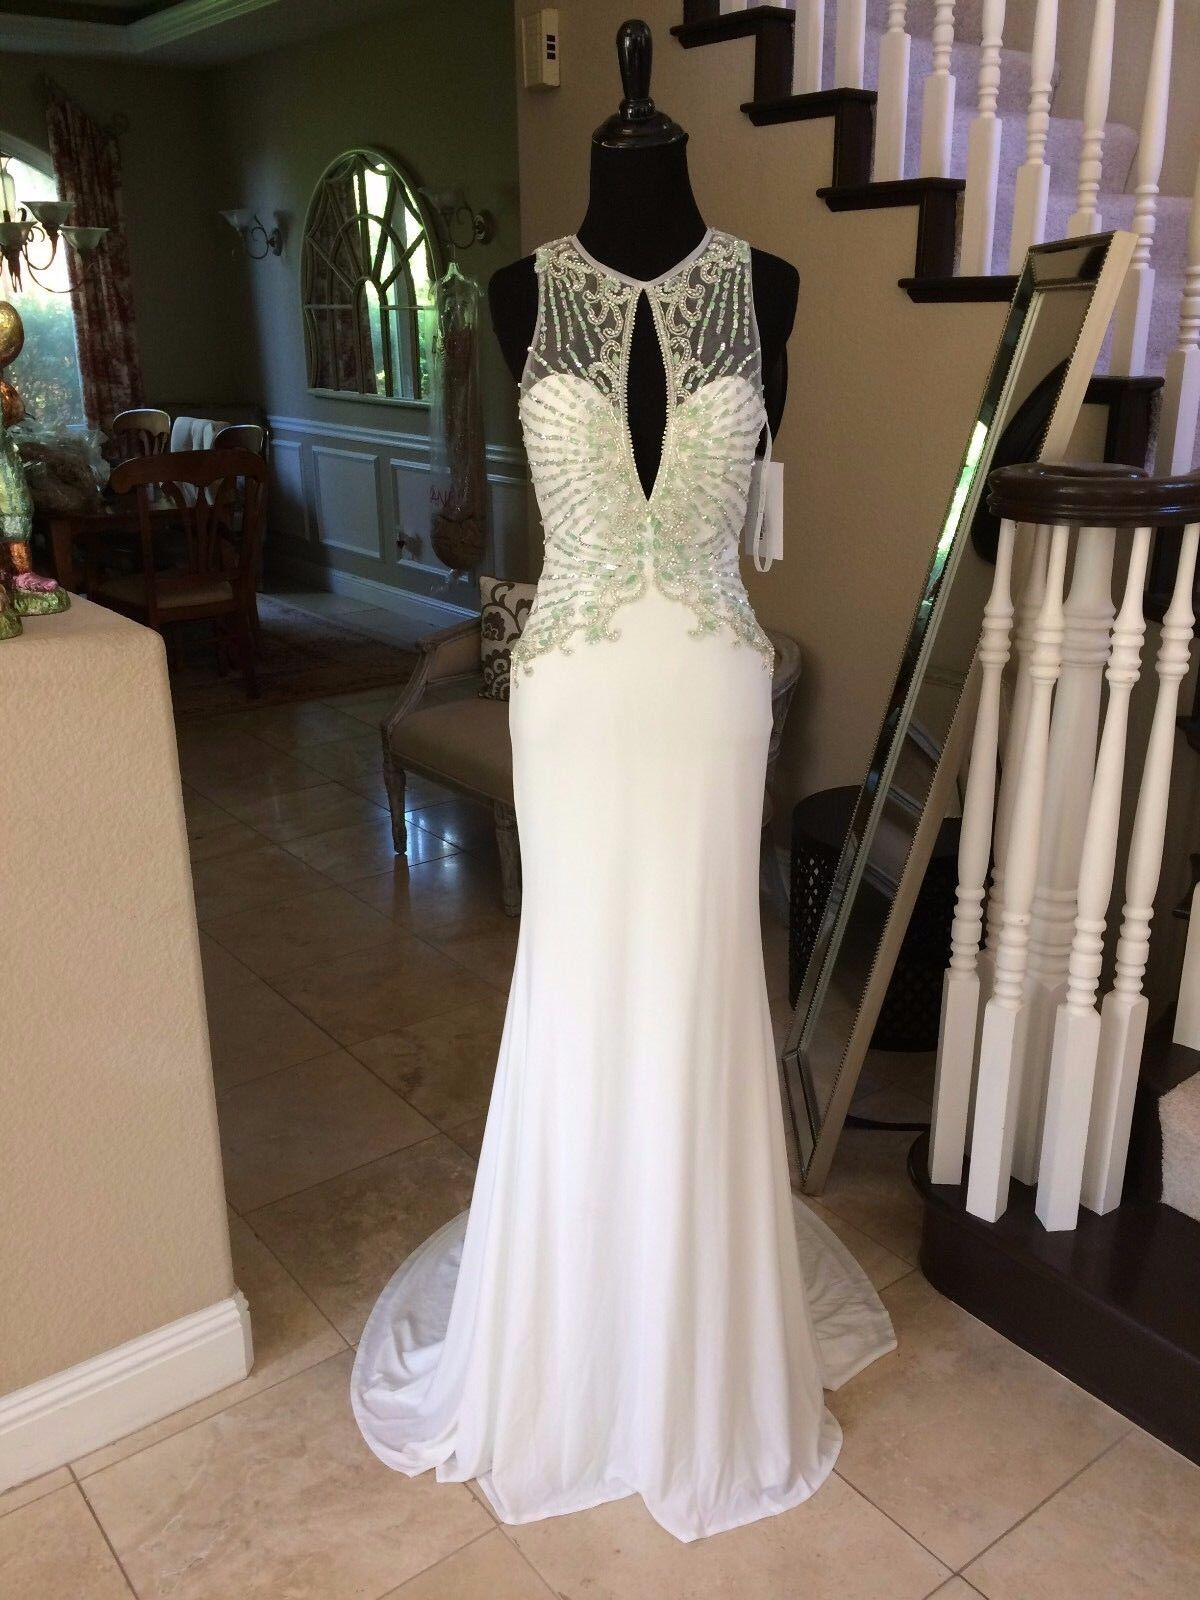 440 NWT IVORY JOVANI PROM PAGEANT FORMAL WEDDING DRESS GOWN SIZE 8